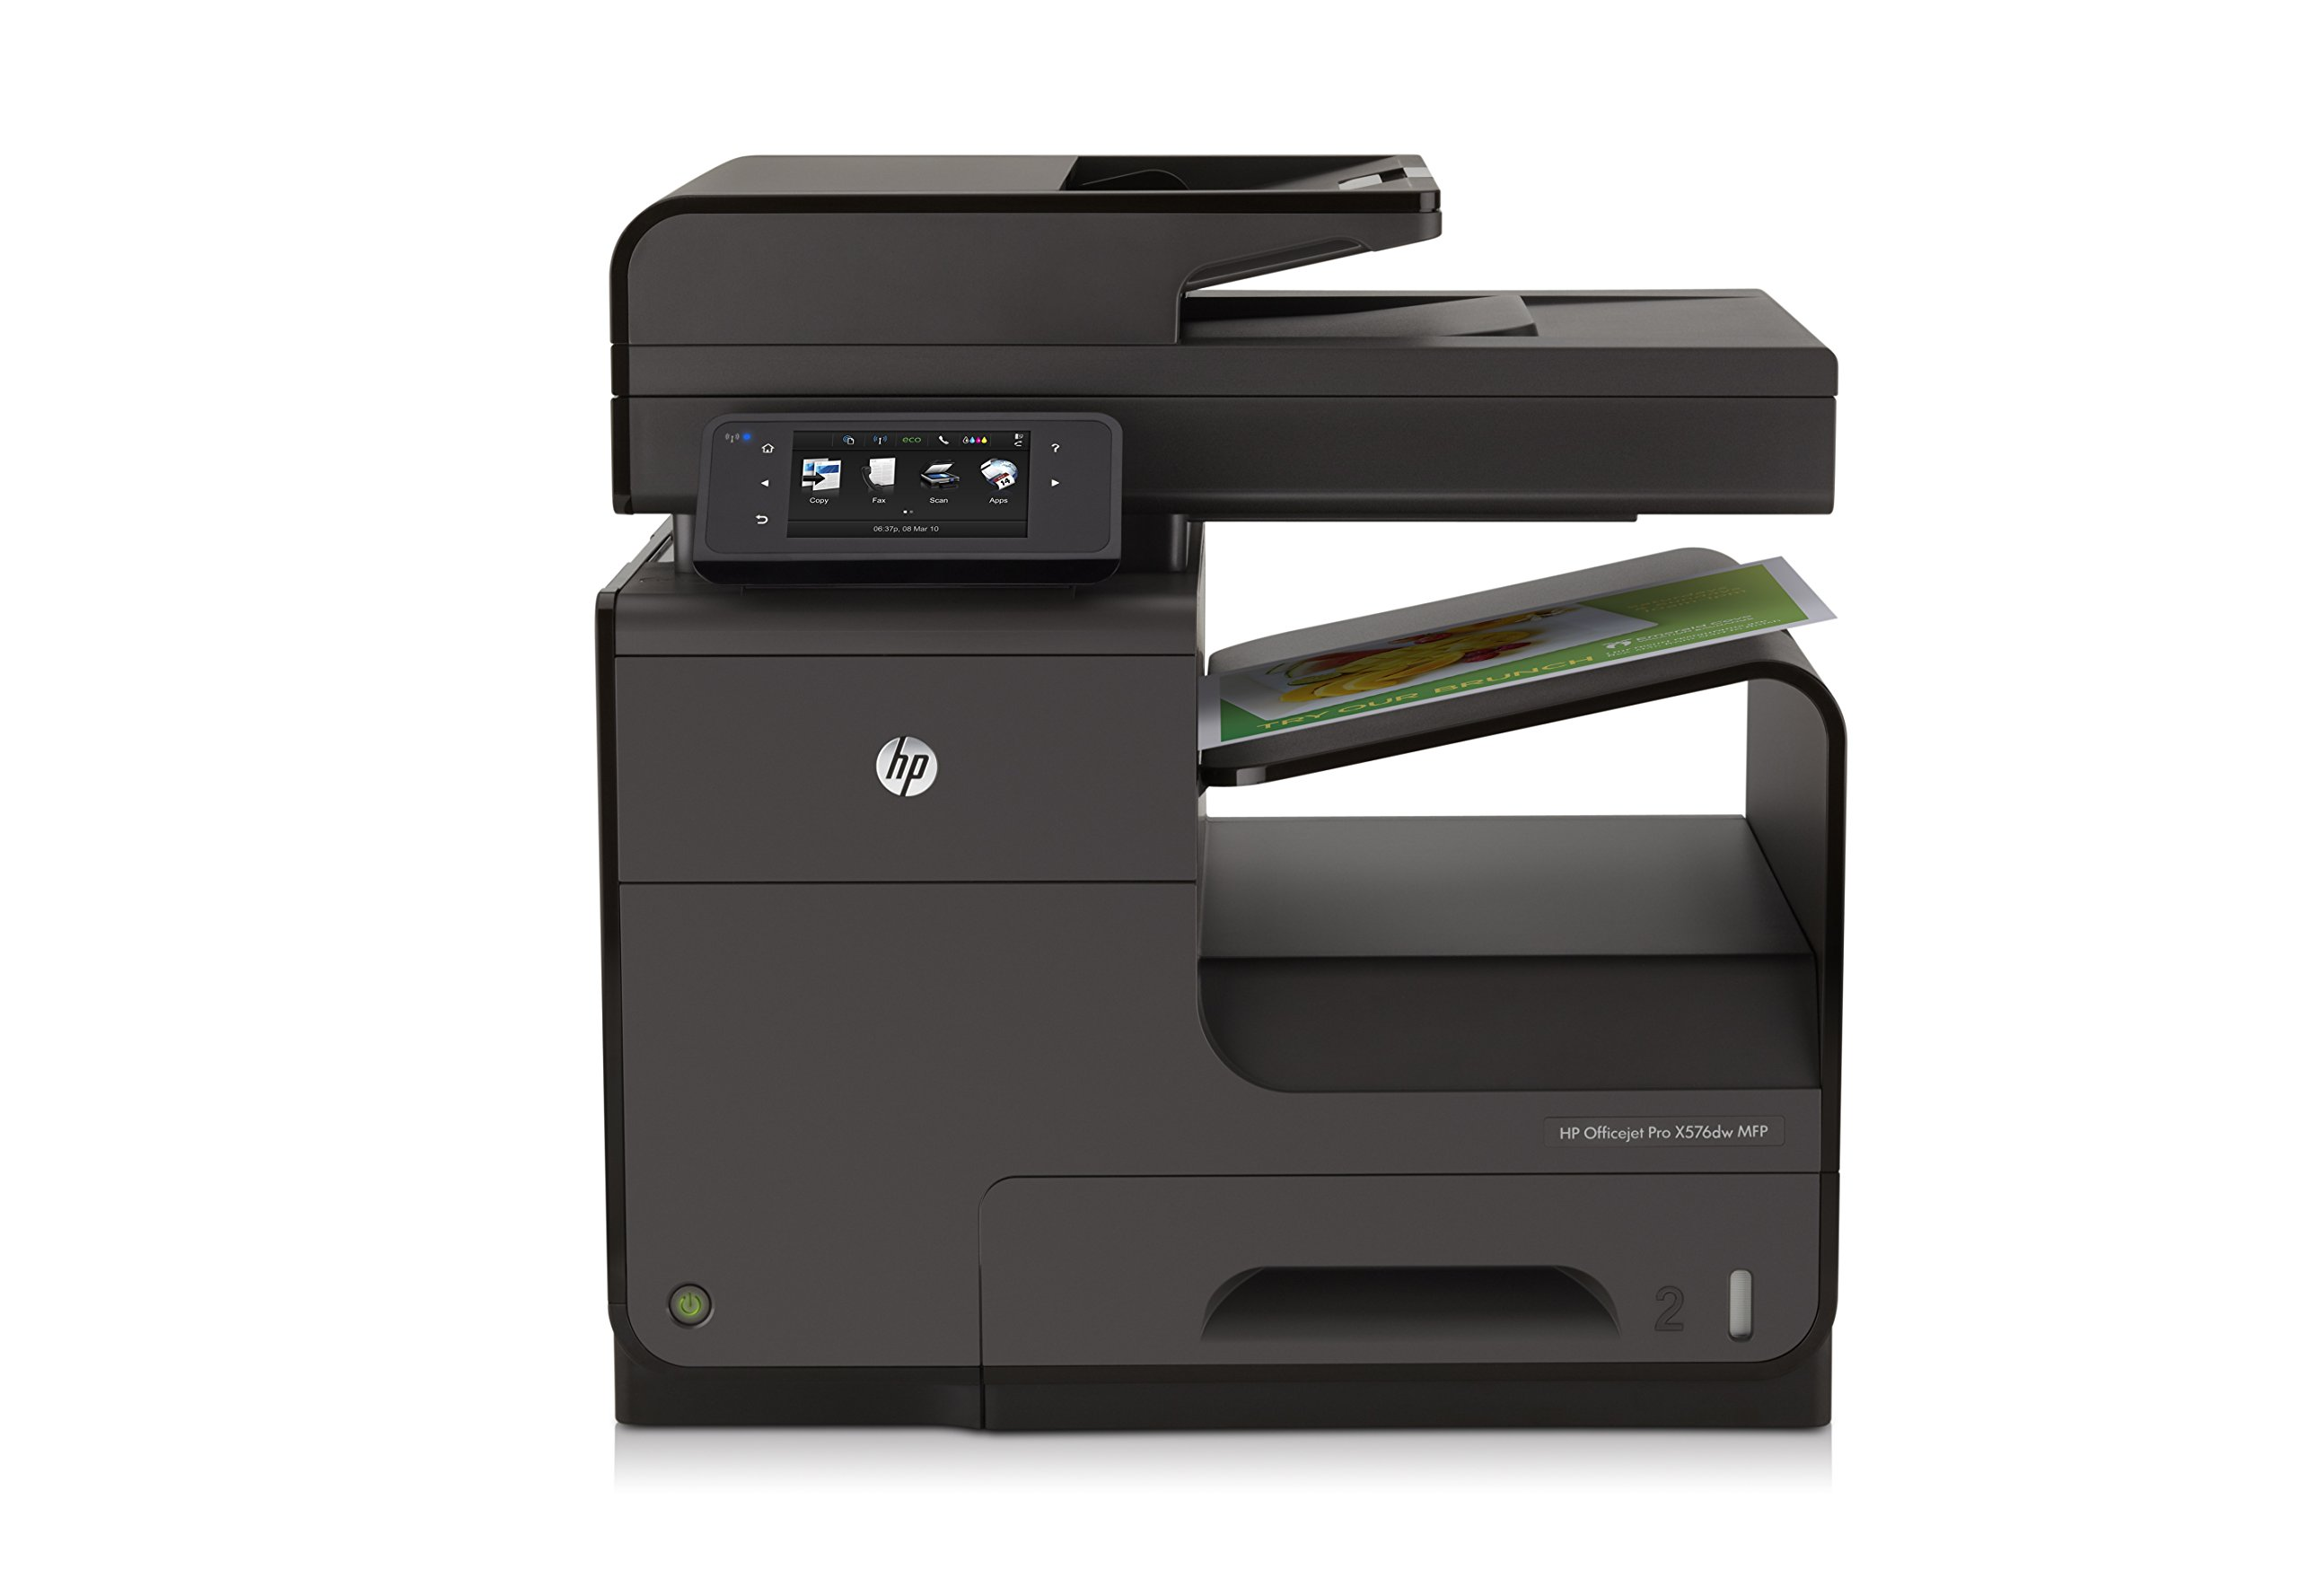 HP OfficeJet Pro X576dw Office Printer with Wireless Network Printing, Remote Fleet Management & Fast Printing (CN598A) by HP